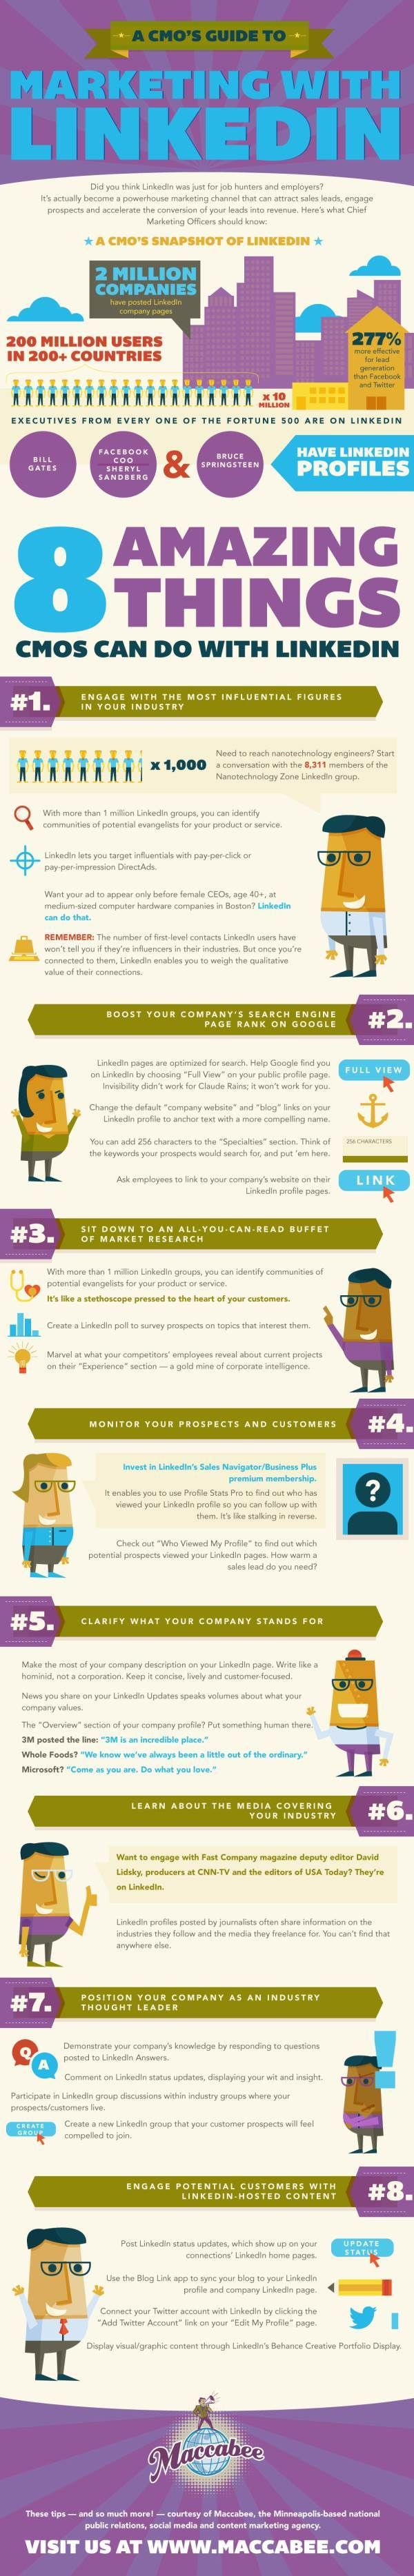 Infographic: 8 amazing things marketers can do using LinkedIn - The Hub